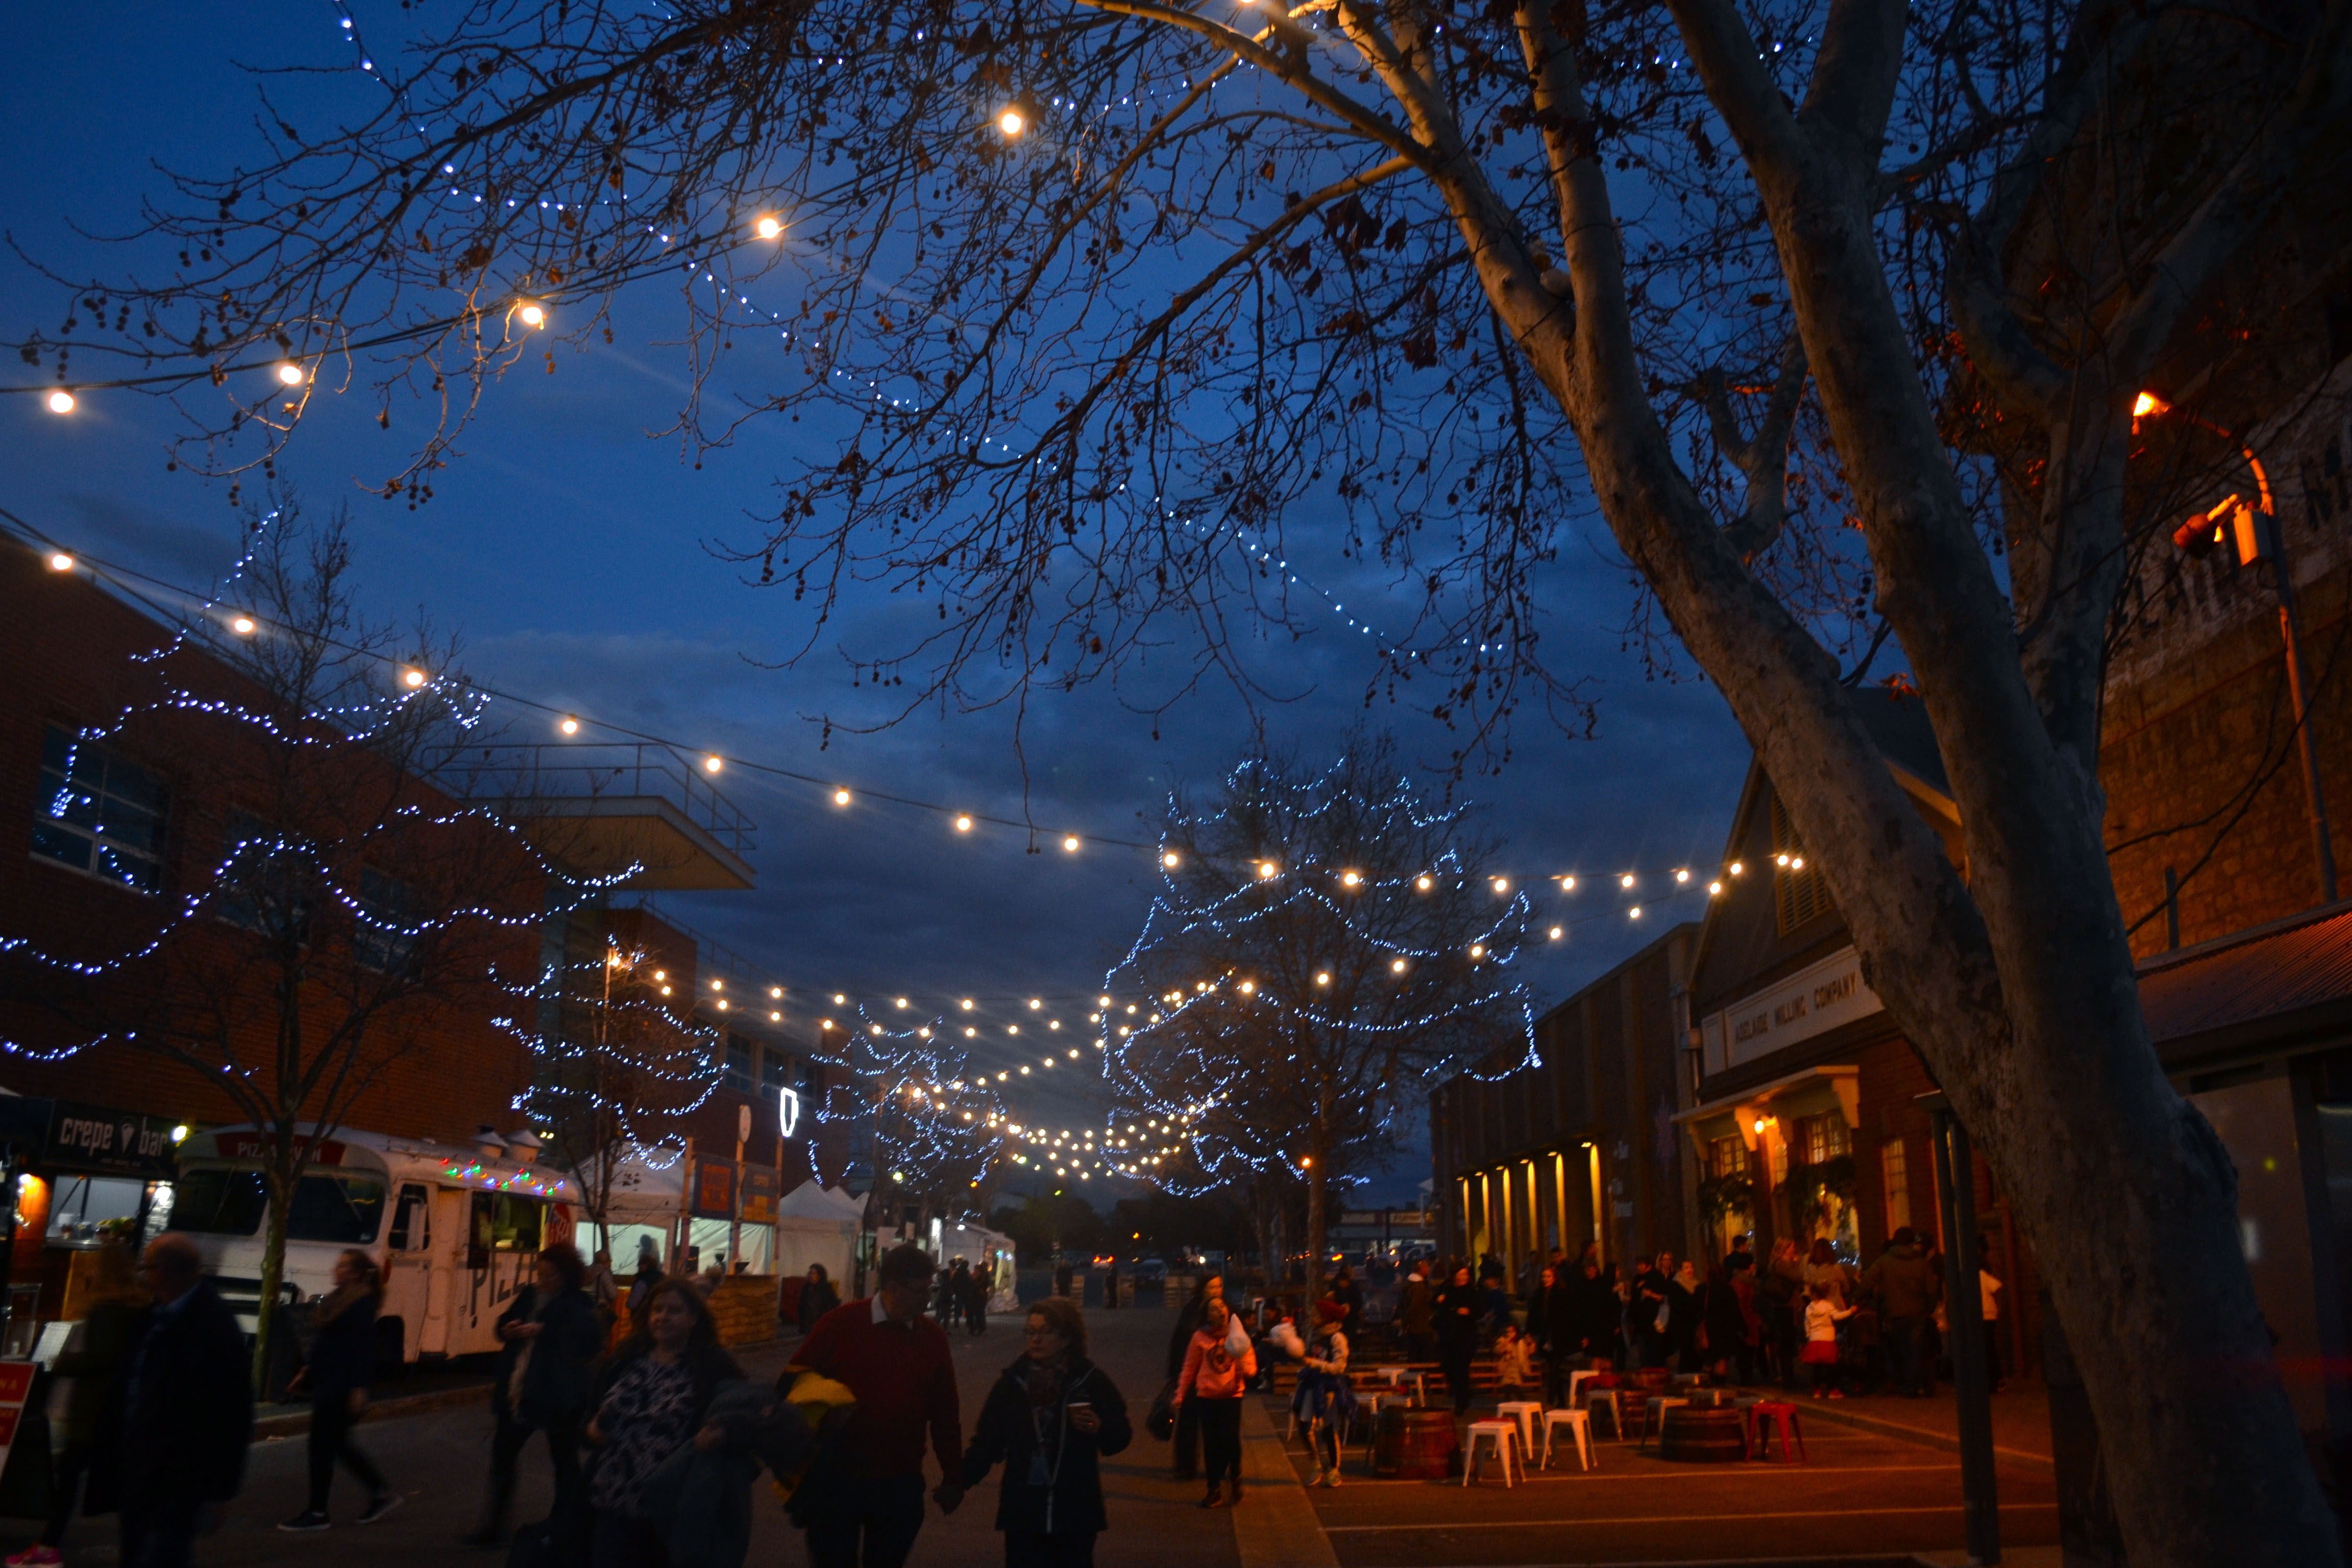 Food trucks and fizzing fires at Winterfest.